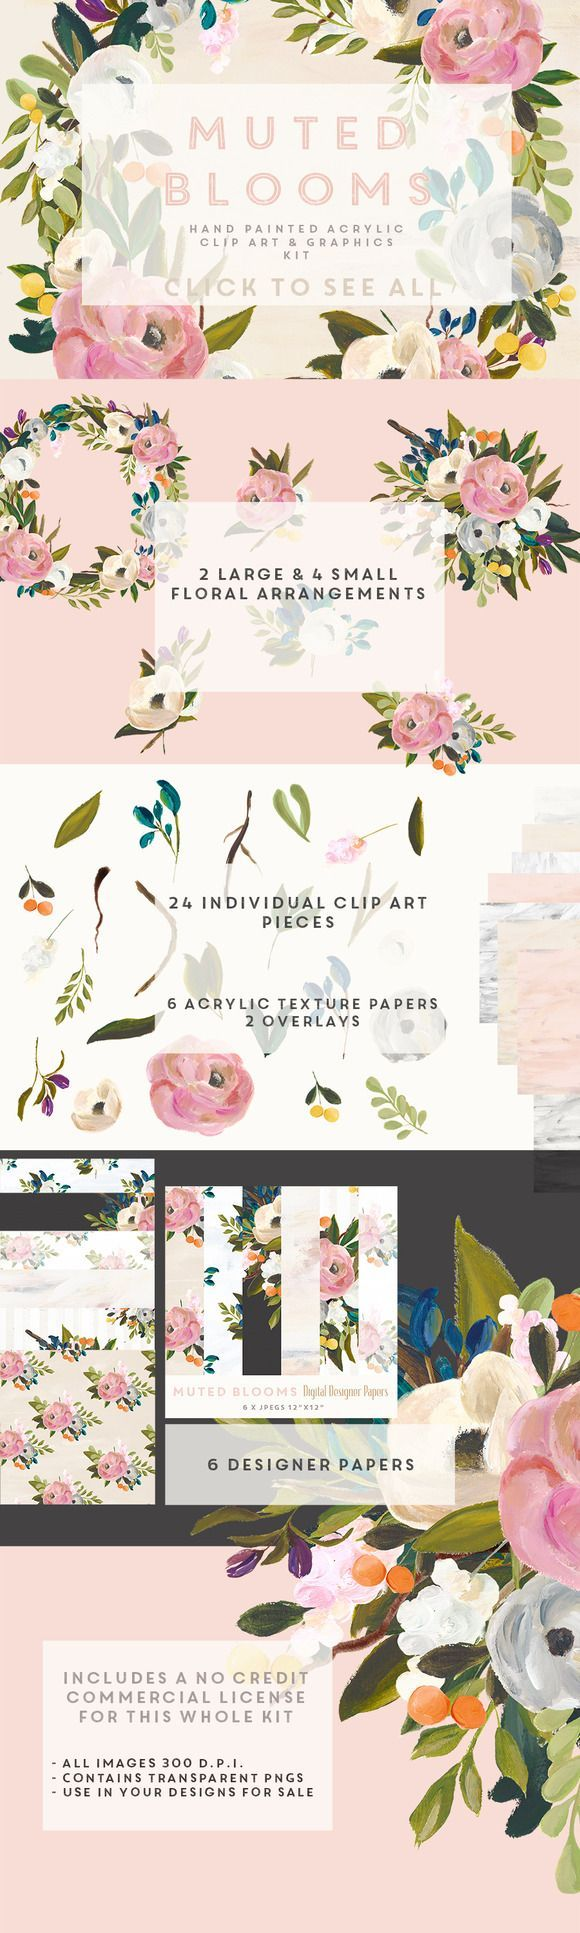 Hand Painted Floral Clipart and Graphics                                                                                                                                                                                 More